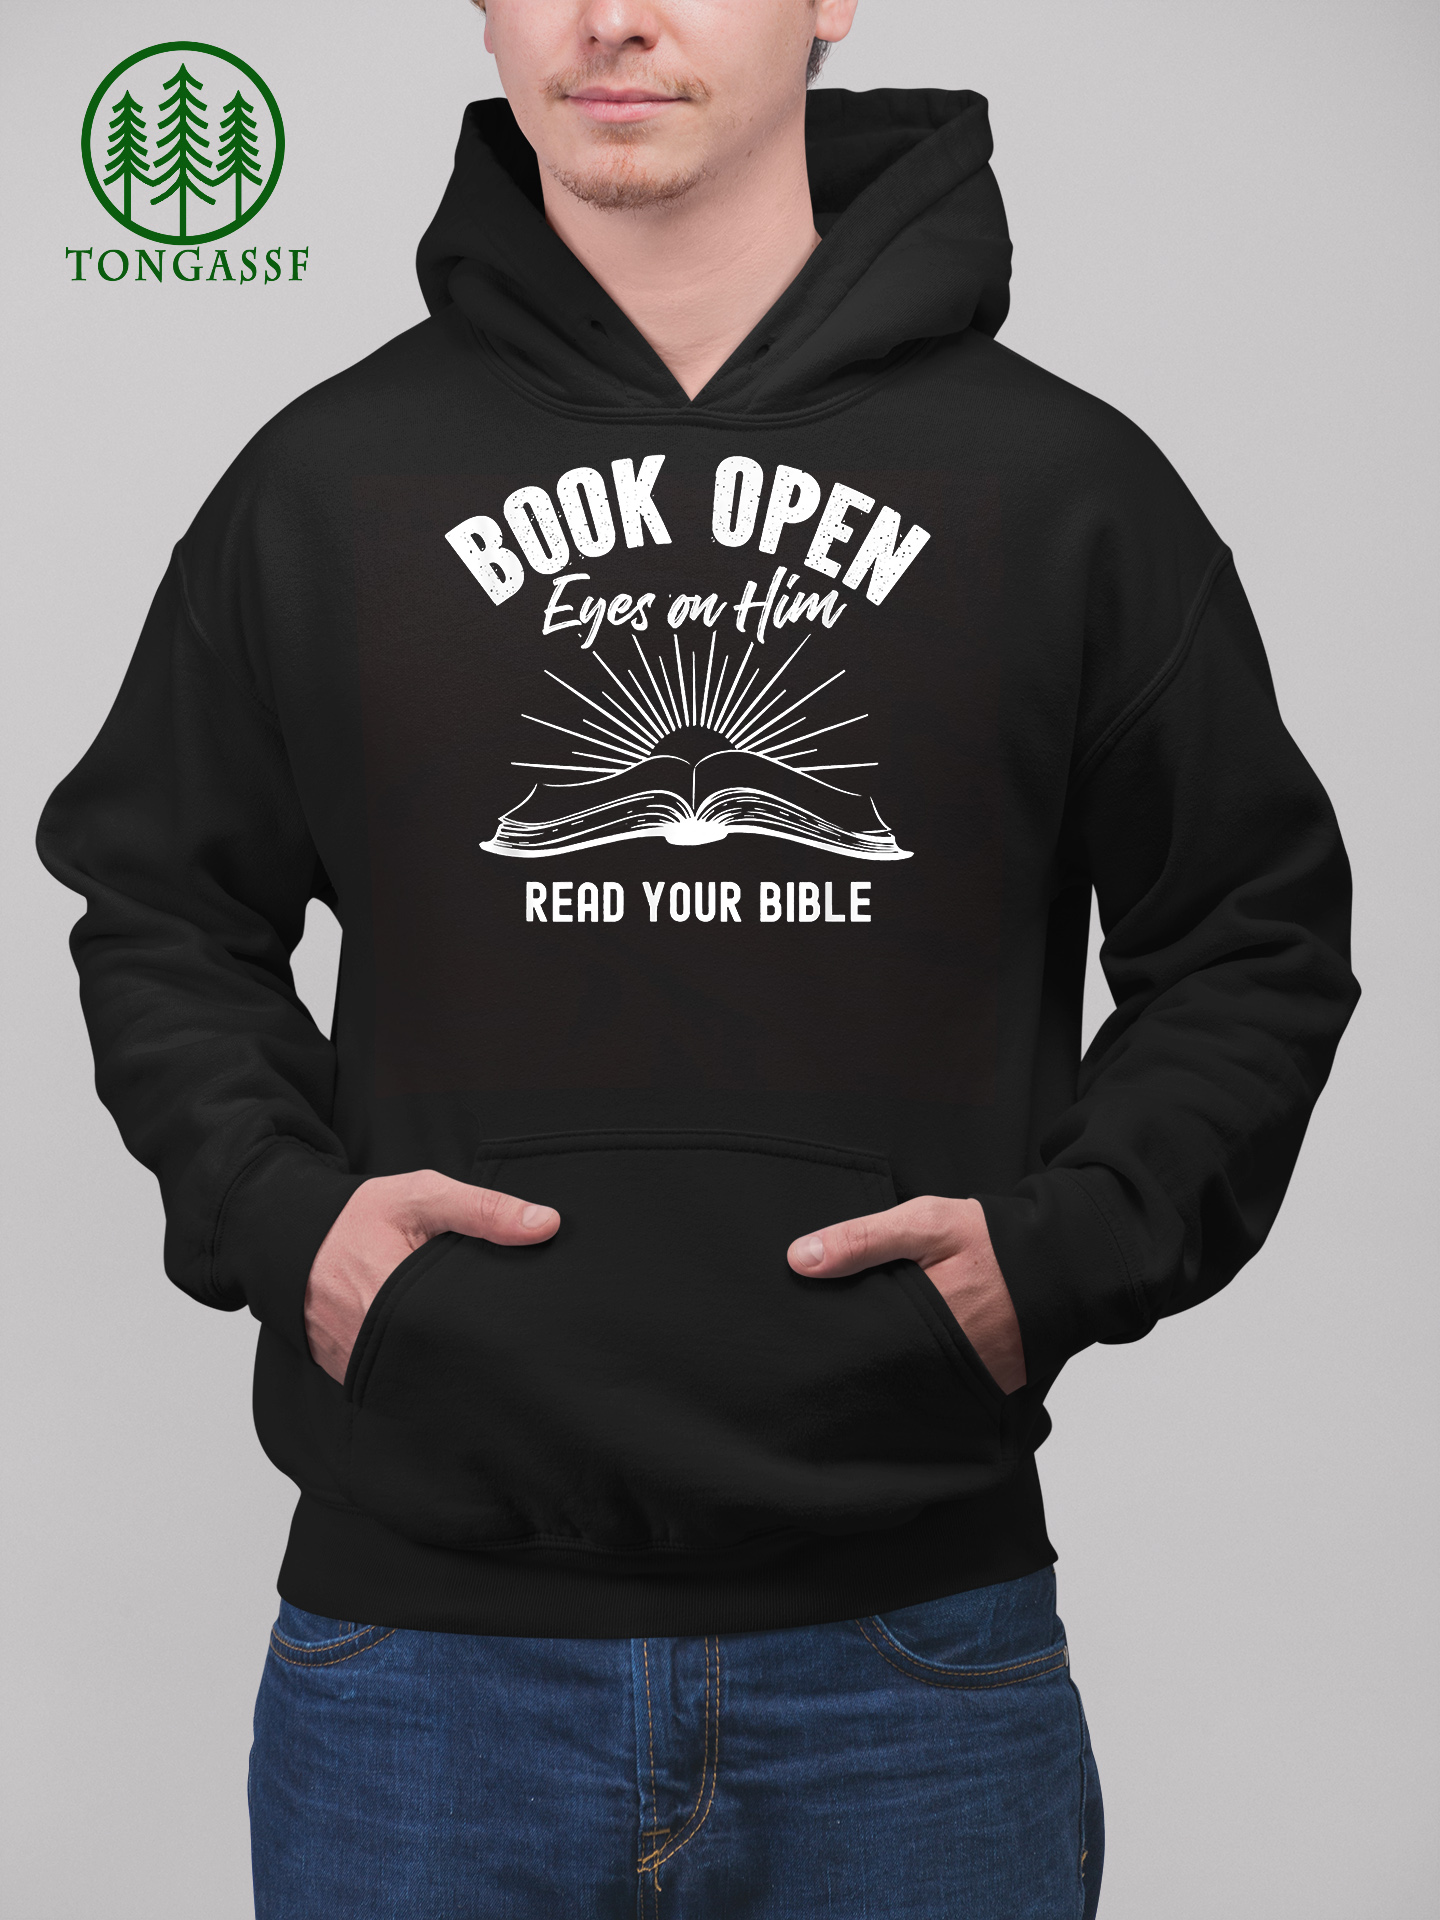 Book Open Eyes On Him Read your Bible